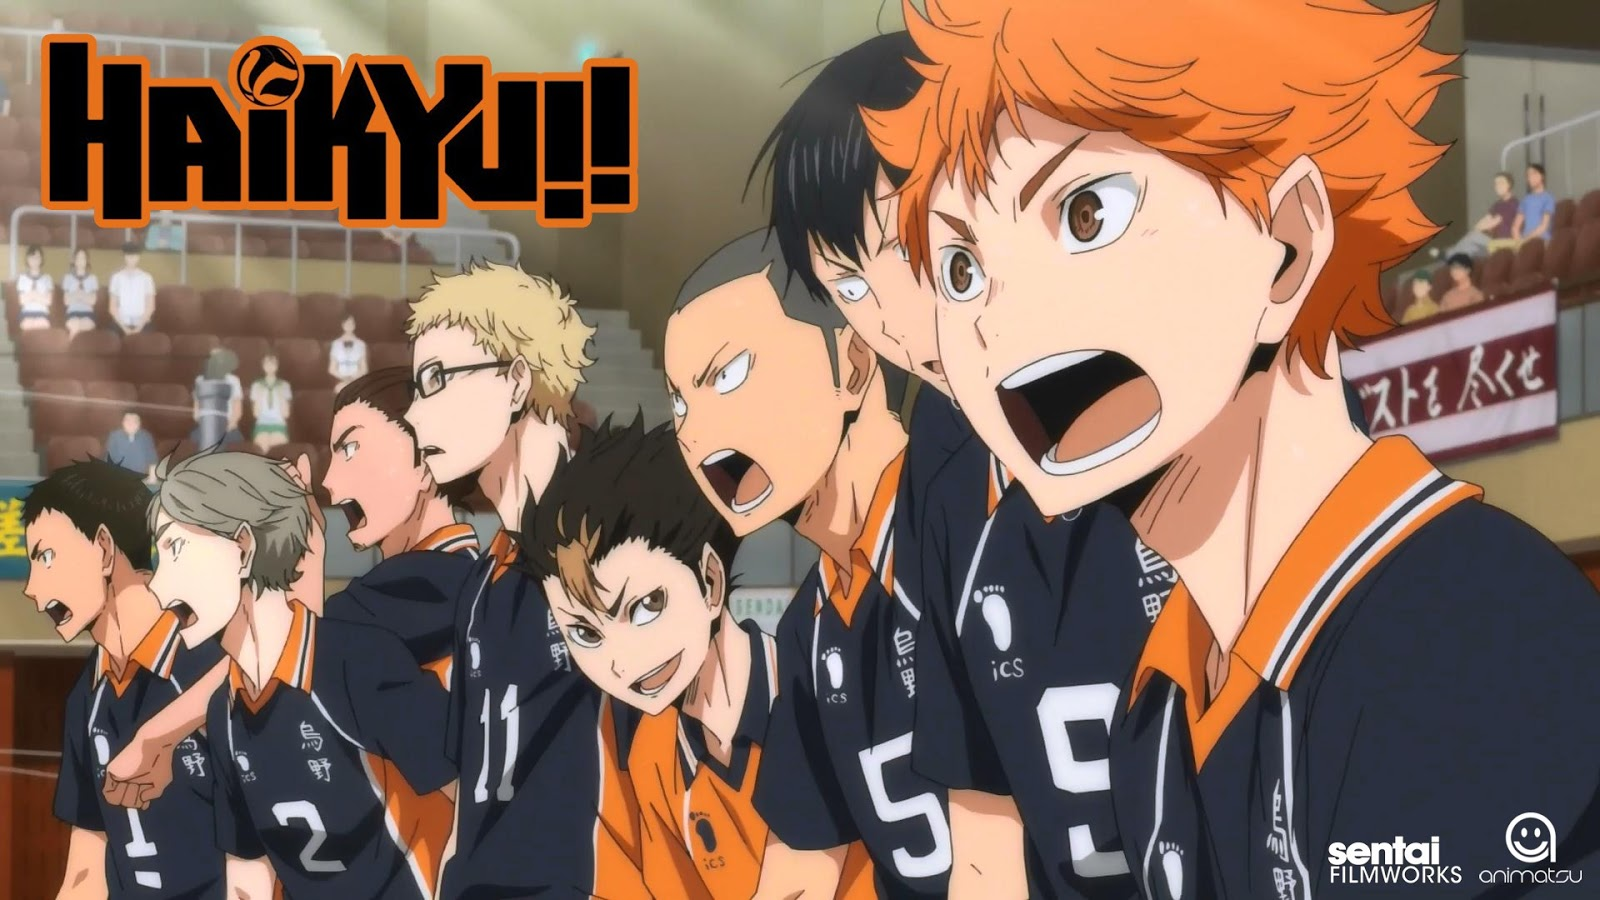 Haikyuu bd season 1 x265 batch subtitle indonesia